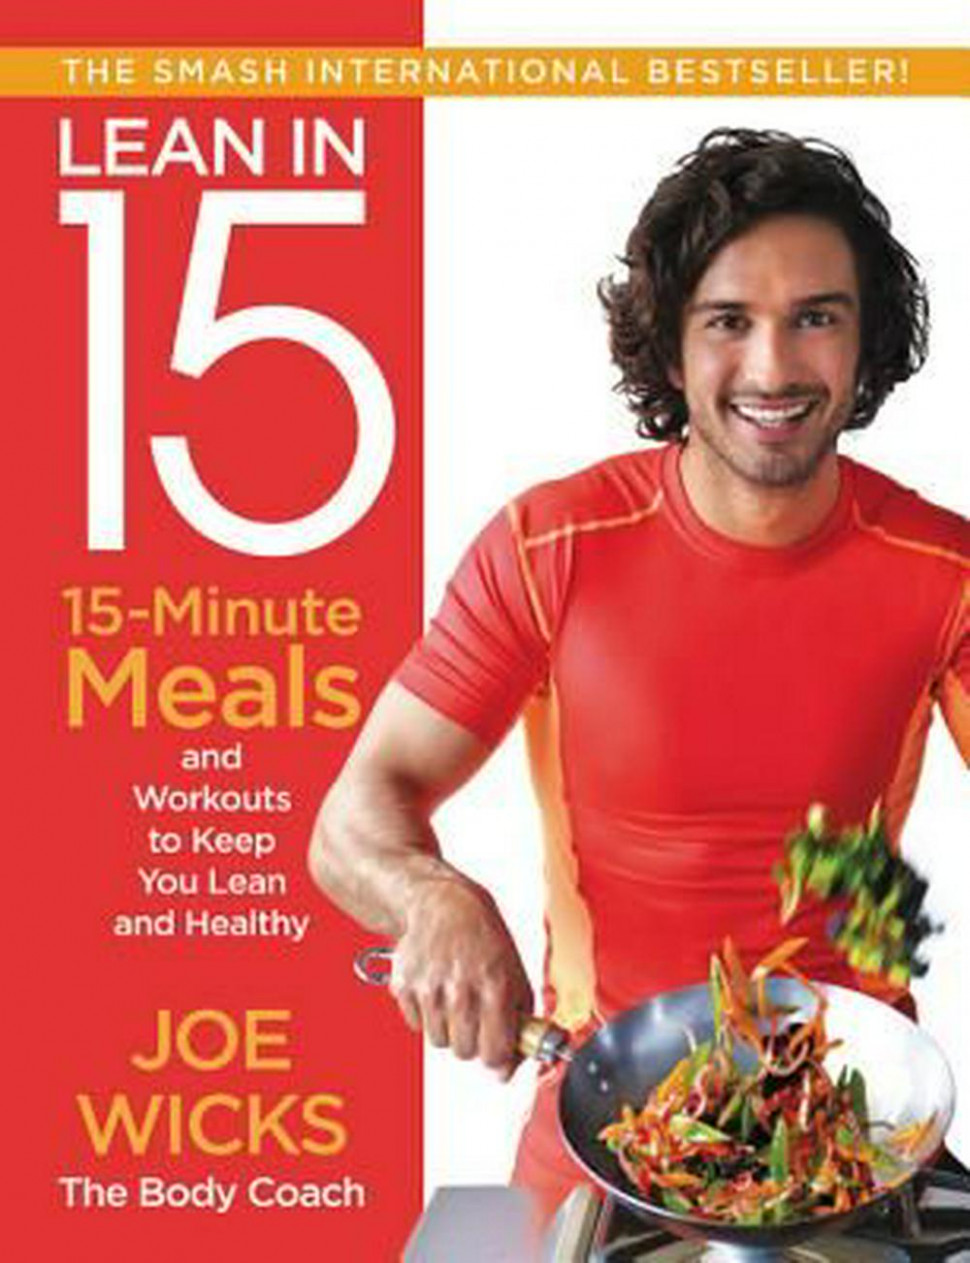 Lean in 11: 11-Minute Meals and Workouts to Keep You Lean and Healthy